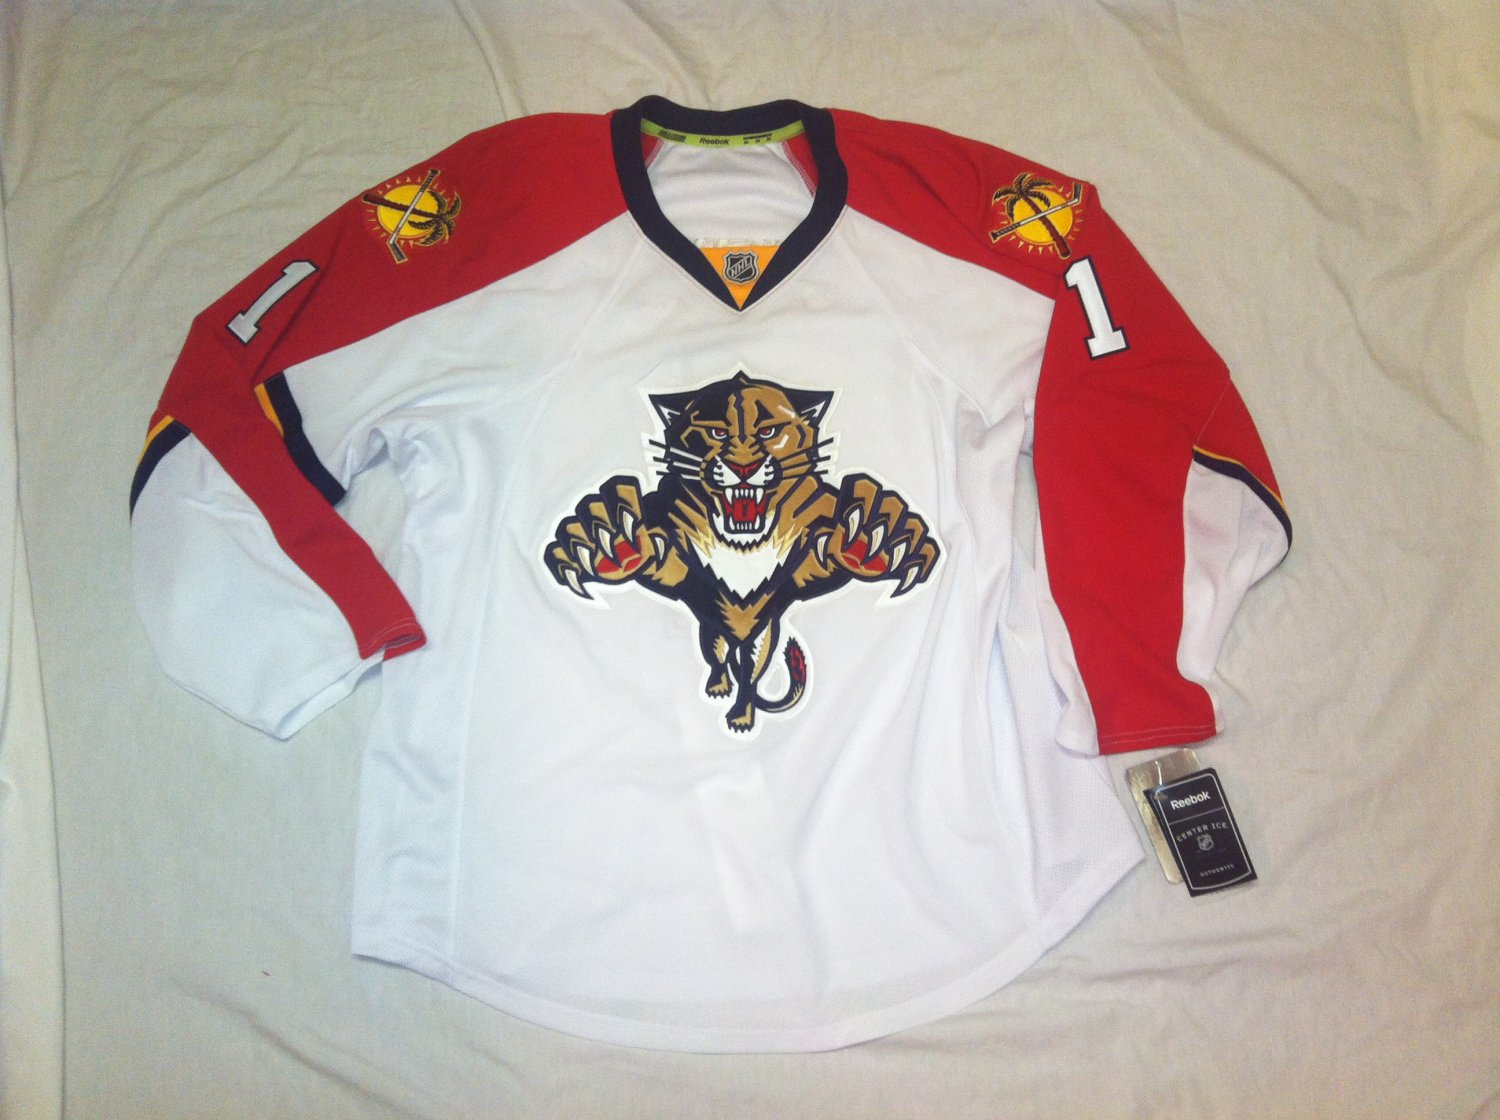 Roberto Luongo Florida Panthers White Road 2015 Reebok Authenic Size 52 Jersey